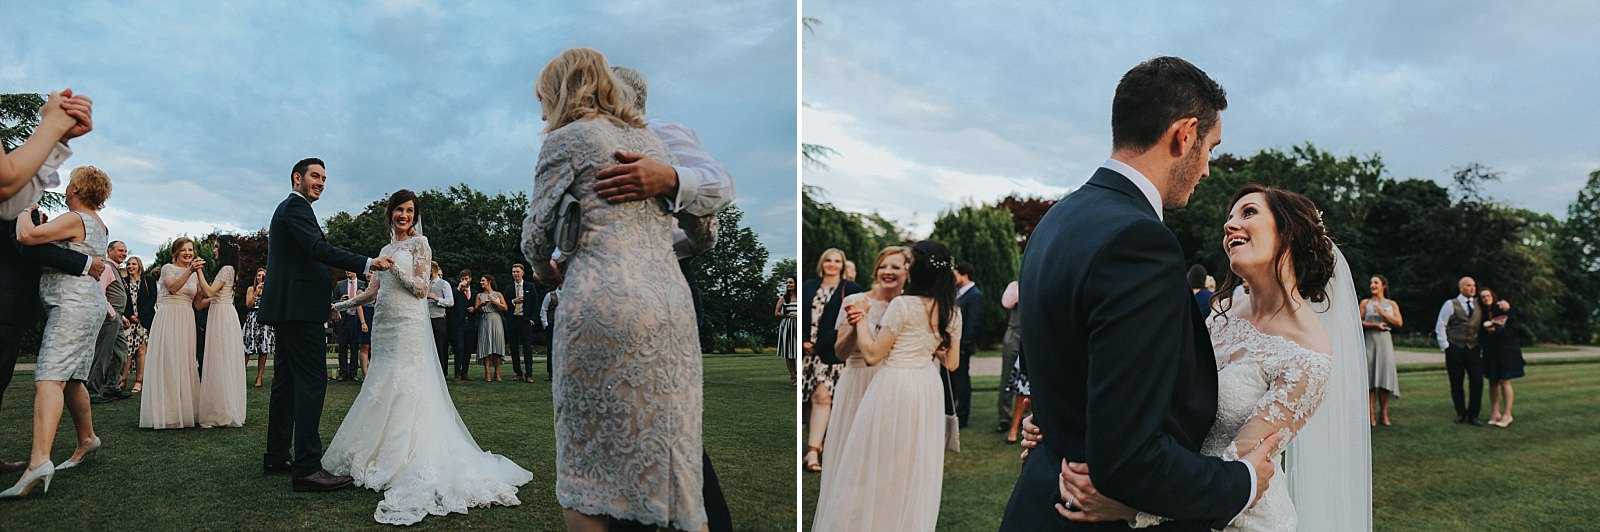 first dance on the lawn at eaves hall